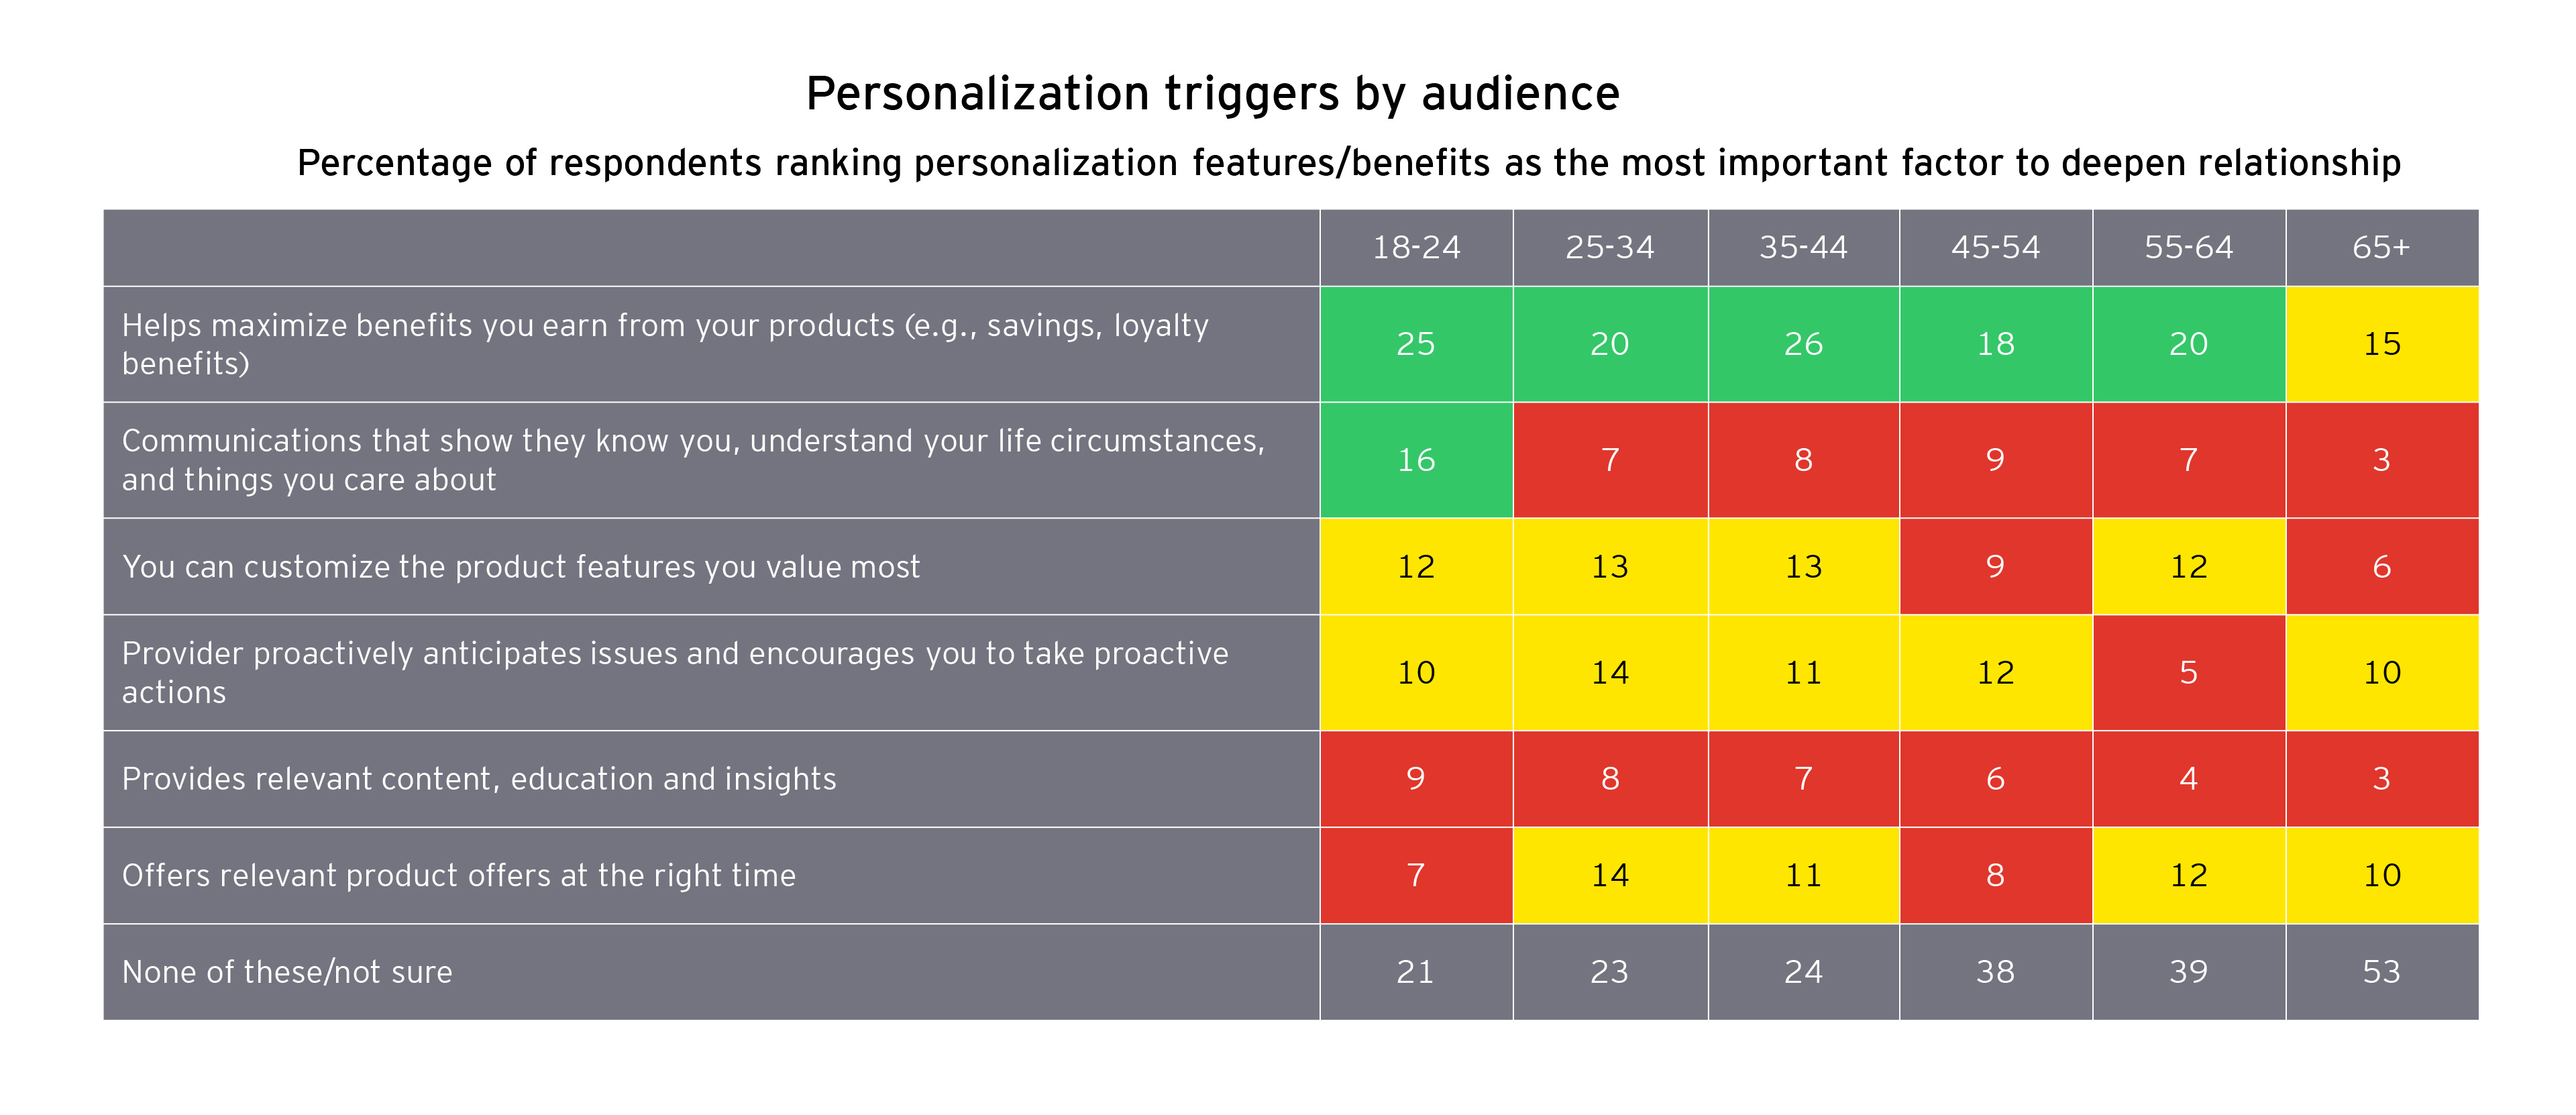 Chart of personalization triggers by audience